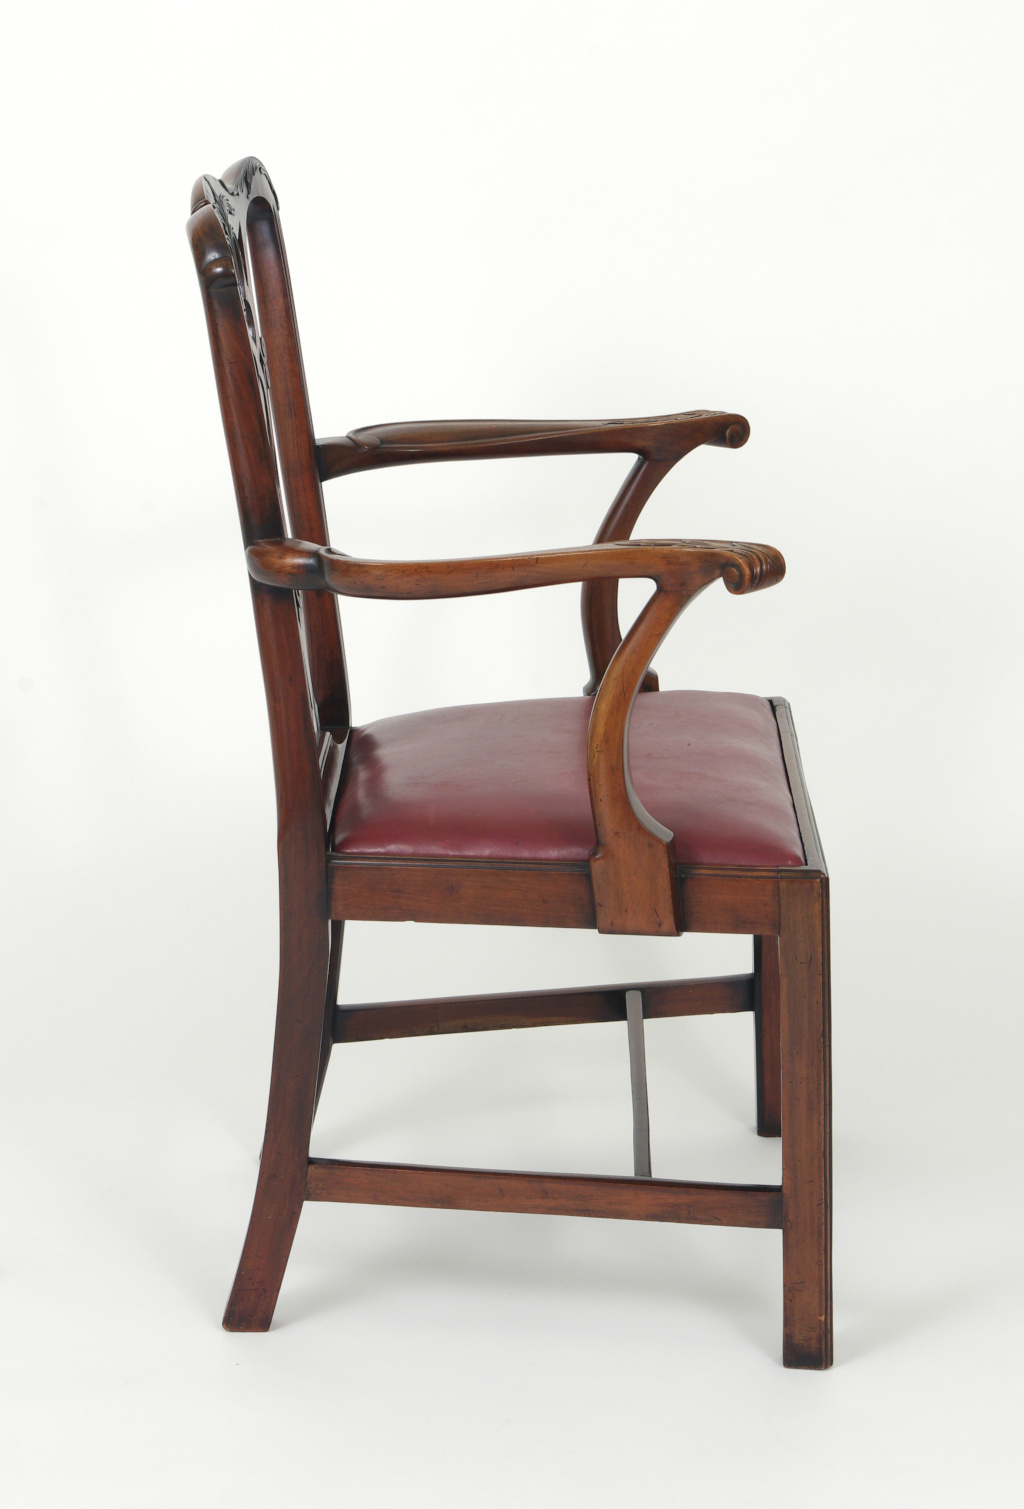 View 7: Set of Eight Chippendale Style Mahogany Dining Chairs (6+2), early 19th c.